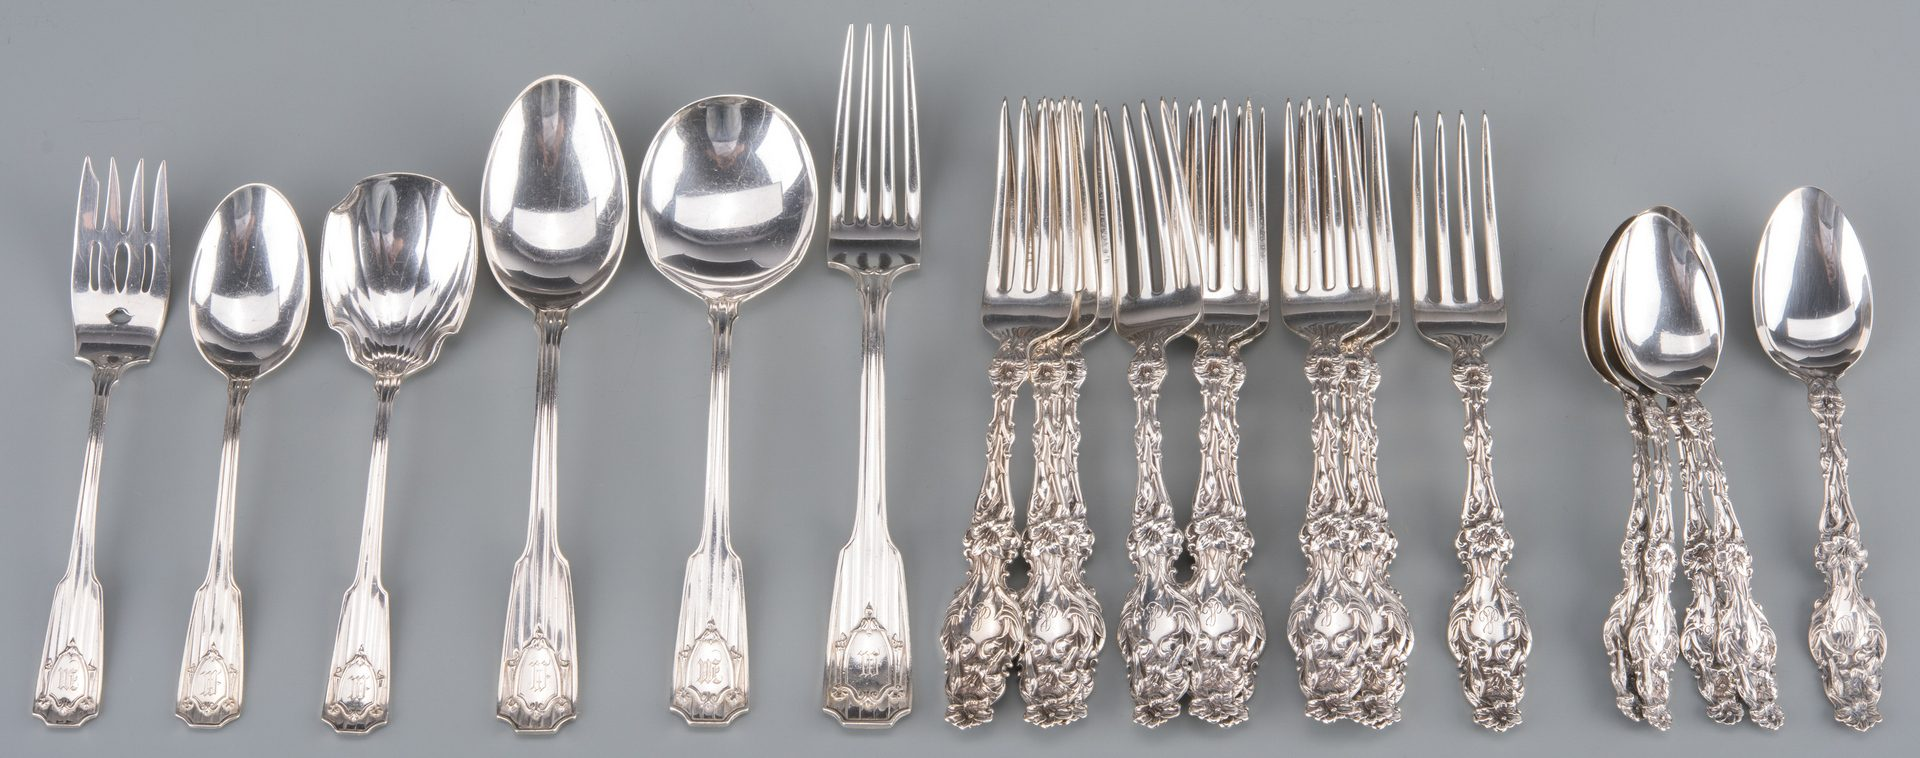 Lot 933: Whiting Lily & Gorham Sterling Flatware, 21 pcs